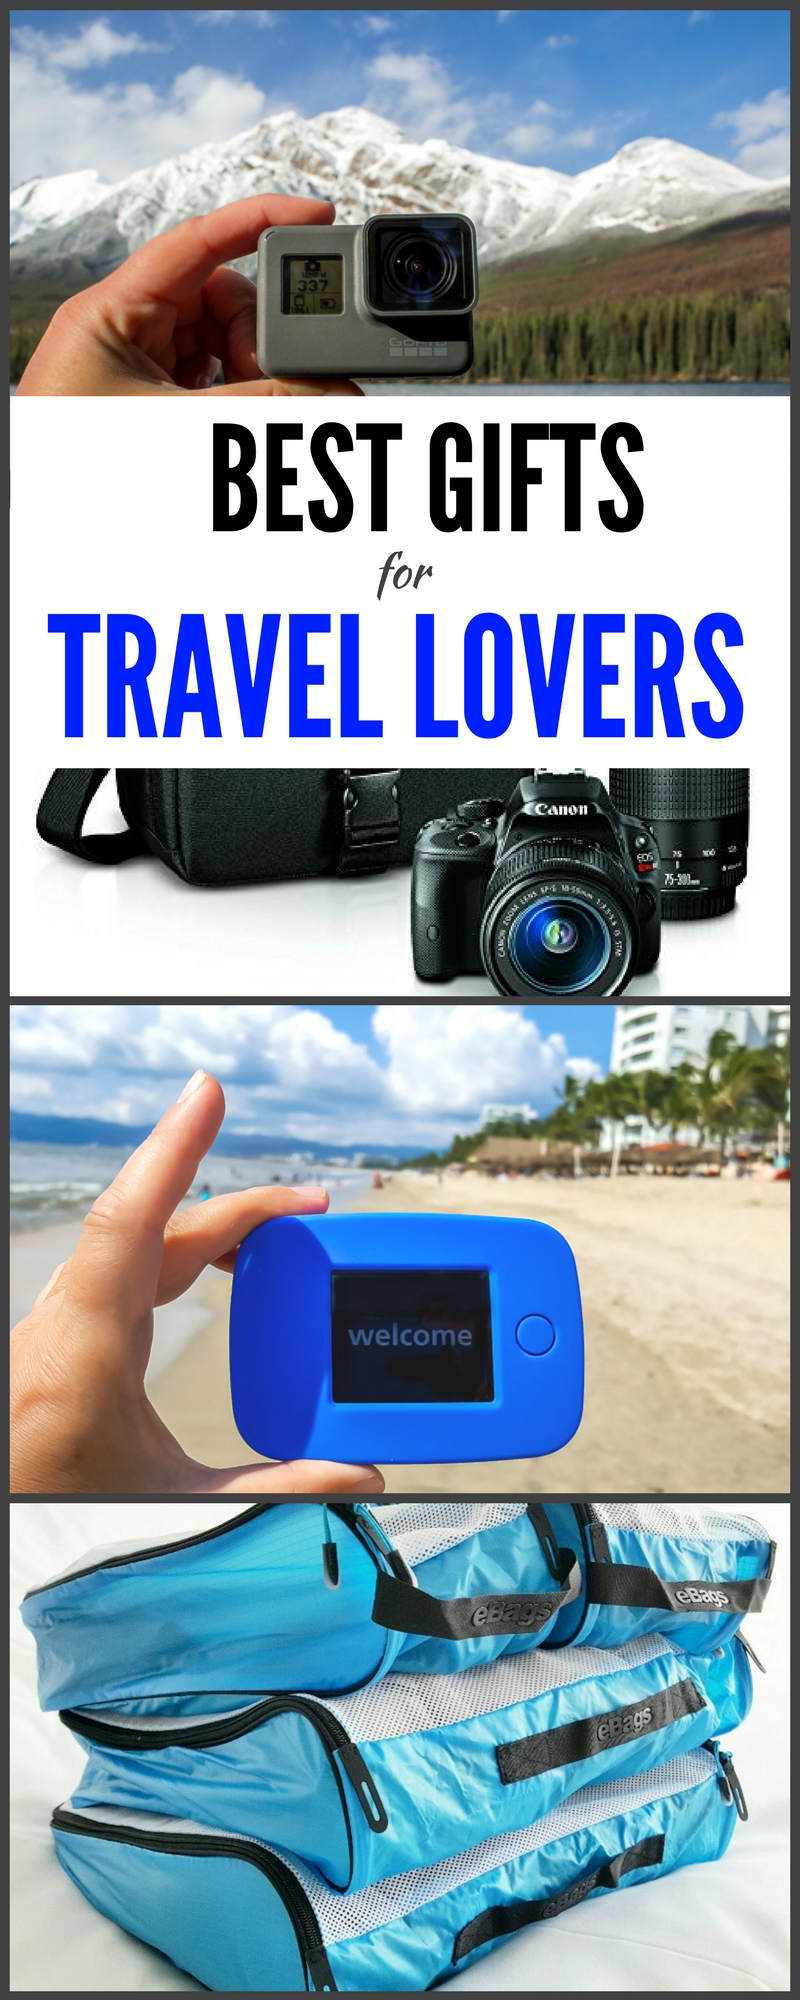 Best gifts for travel lovers #travel #gifts #traveling